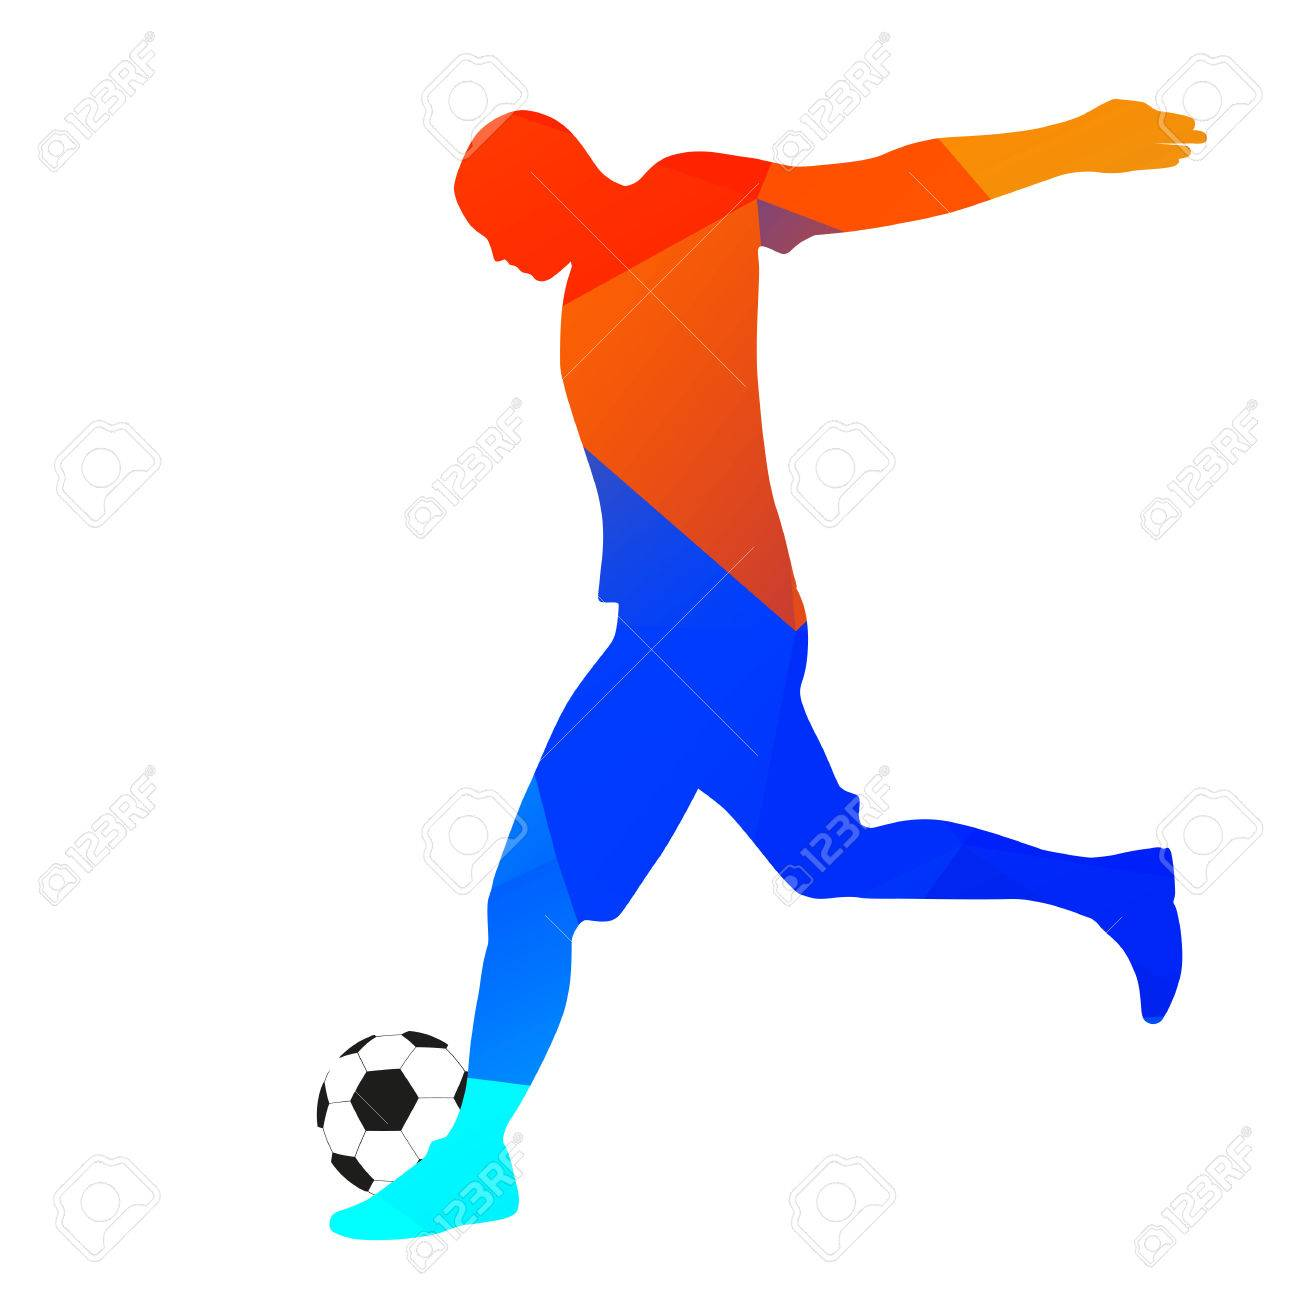 Geometric drawing footballer kicking a ball stock vector 43147796